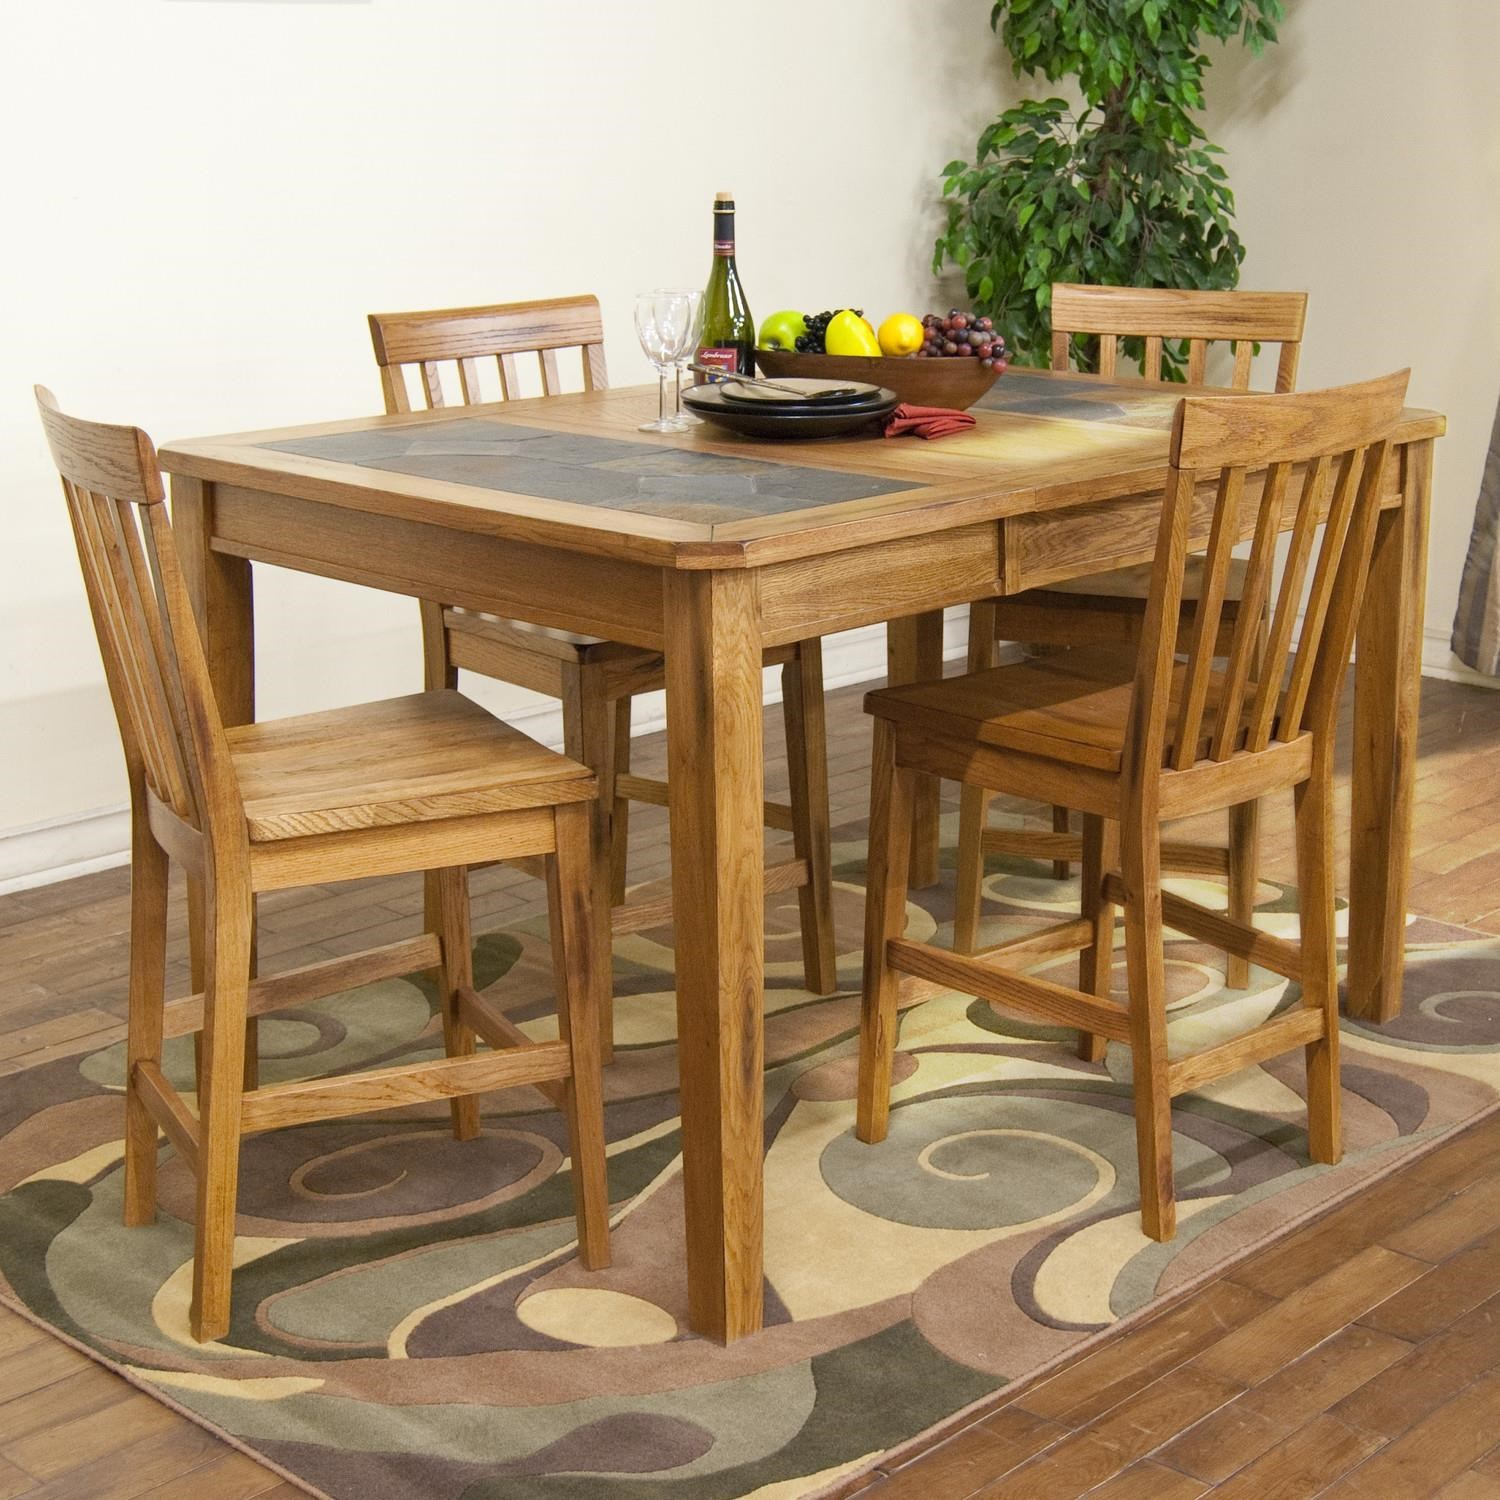 Sedona Counter Height Extension Table w/ Slate Top u0026 Stool Set by Sunny Designs  sc 1 st  John V Schultz Furniture & Sunny Designs Sedona Counter Height Extension Table w/ Slate Top ...